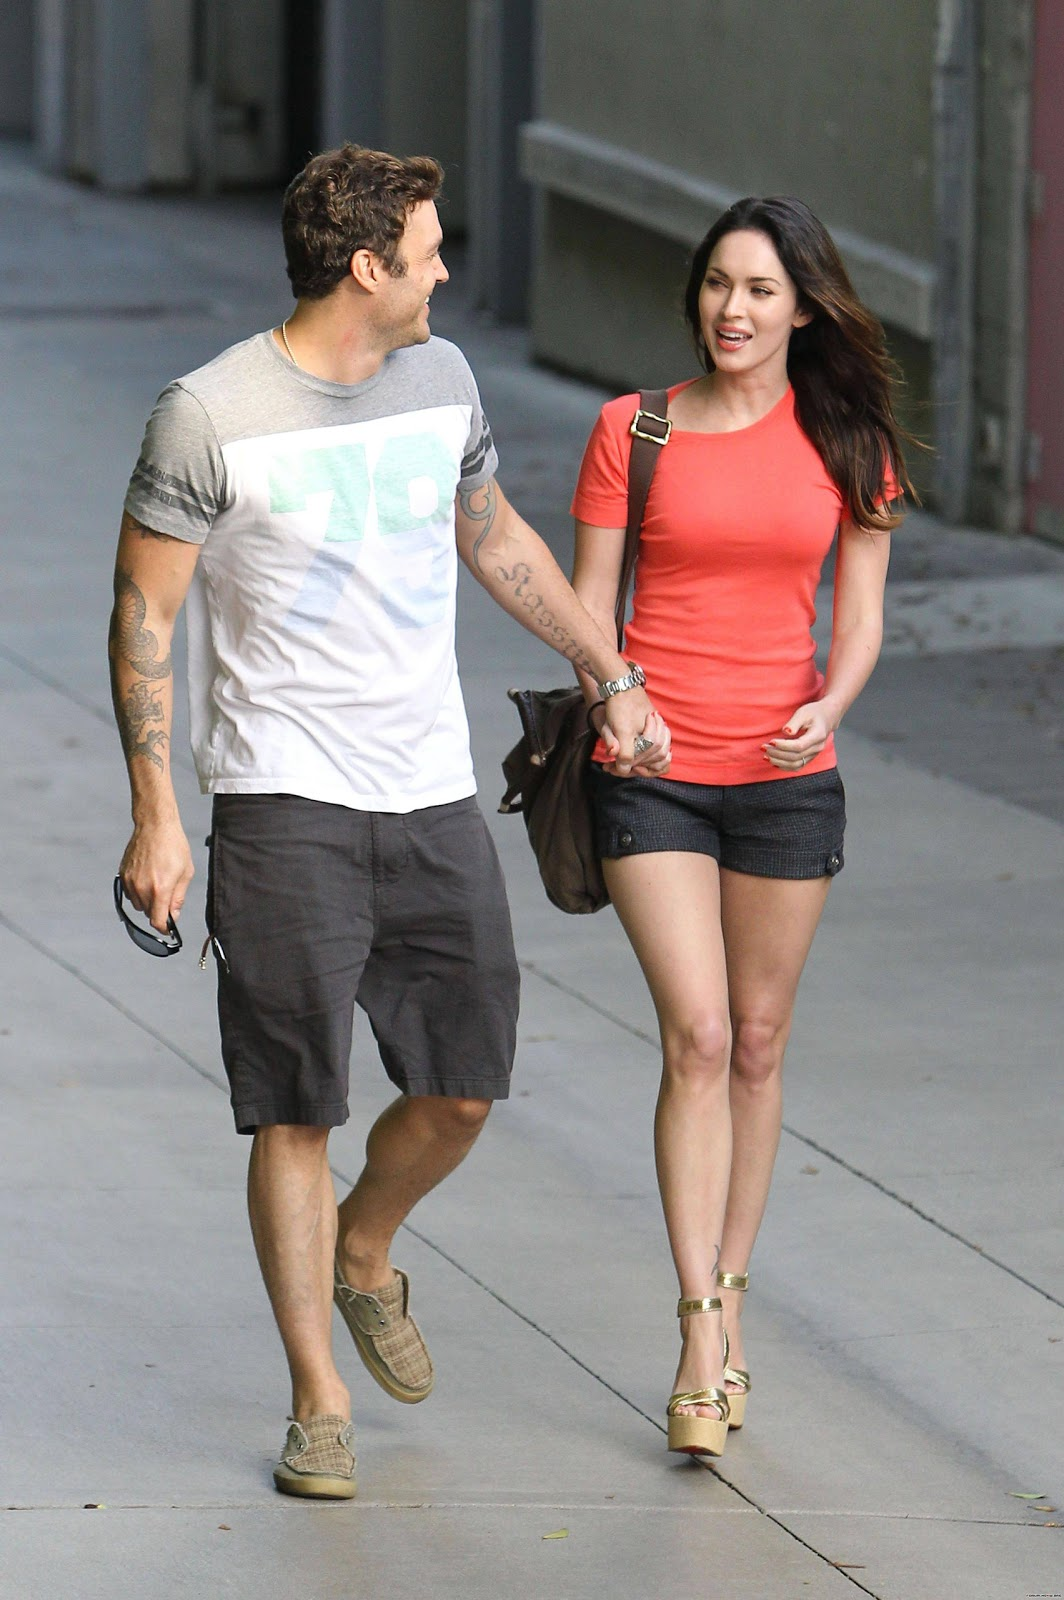 http://3.bp.blogspot.com/-sKex5SQXqqw/TjDOBTXlJfI/AAAAAAAACS0/GhJ-MG7TbDk/s1600/Megan+Fox+out+in+Santa+Monica.jpg